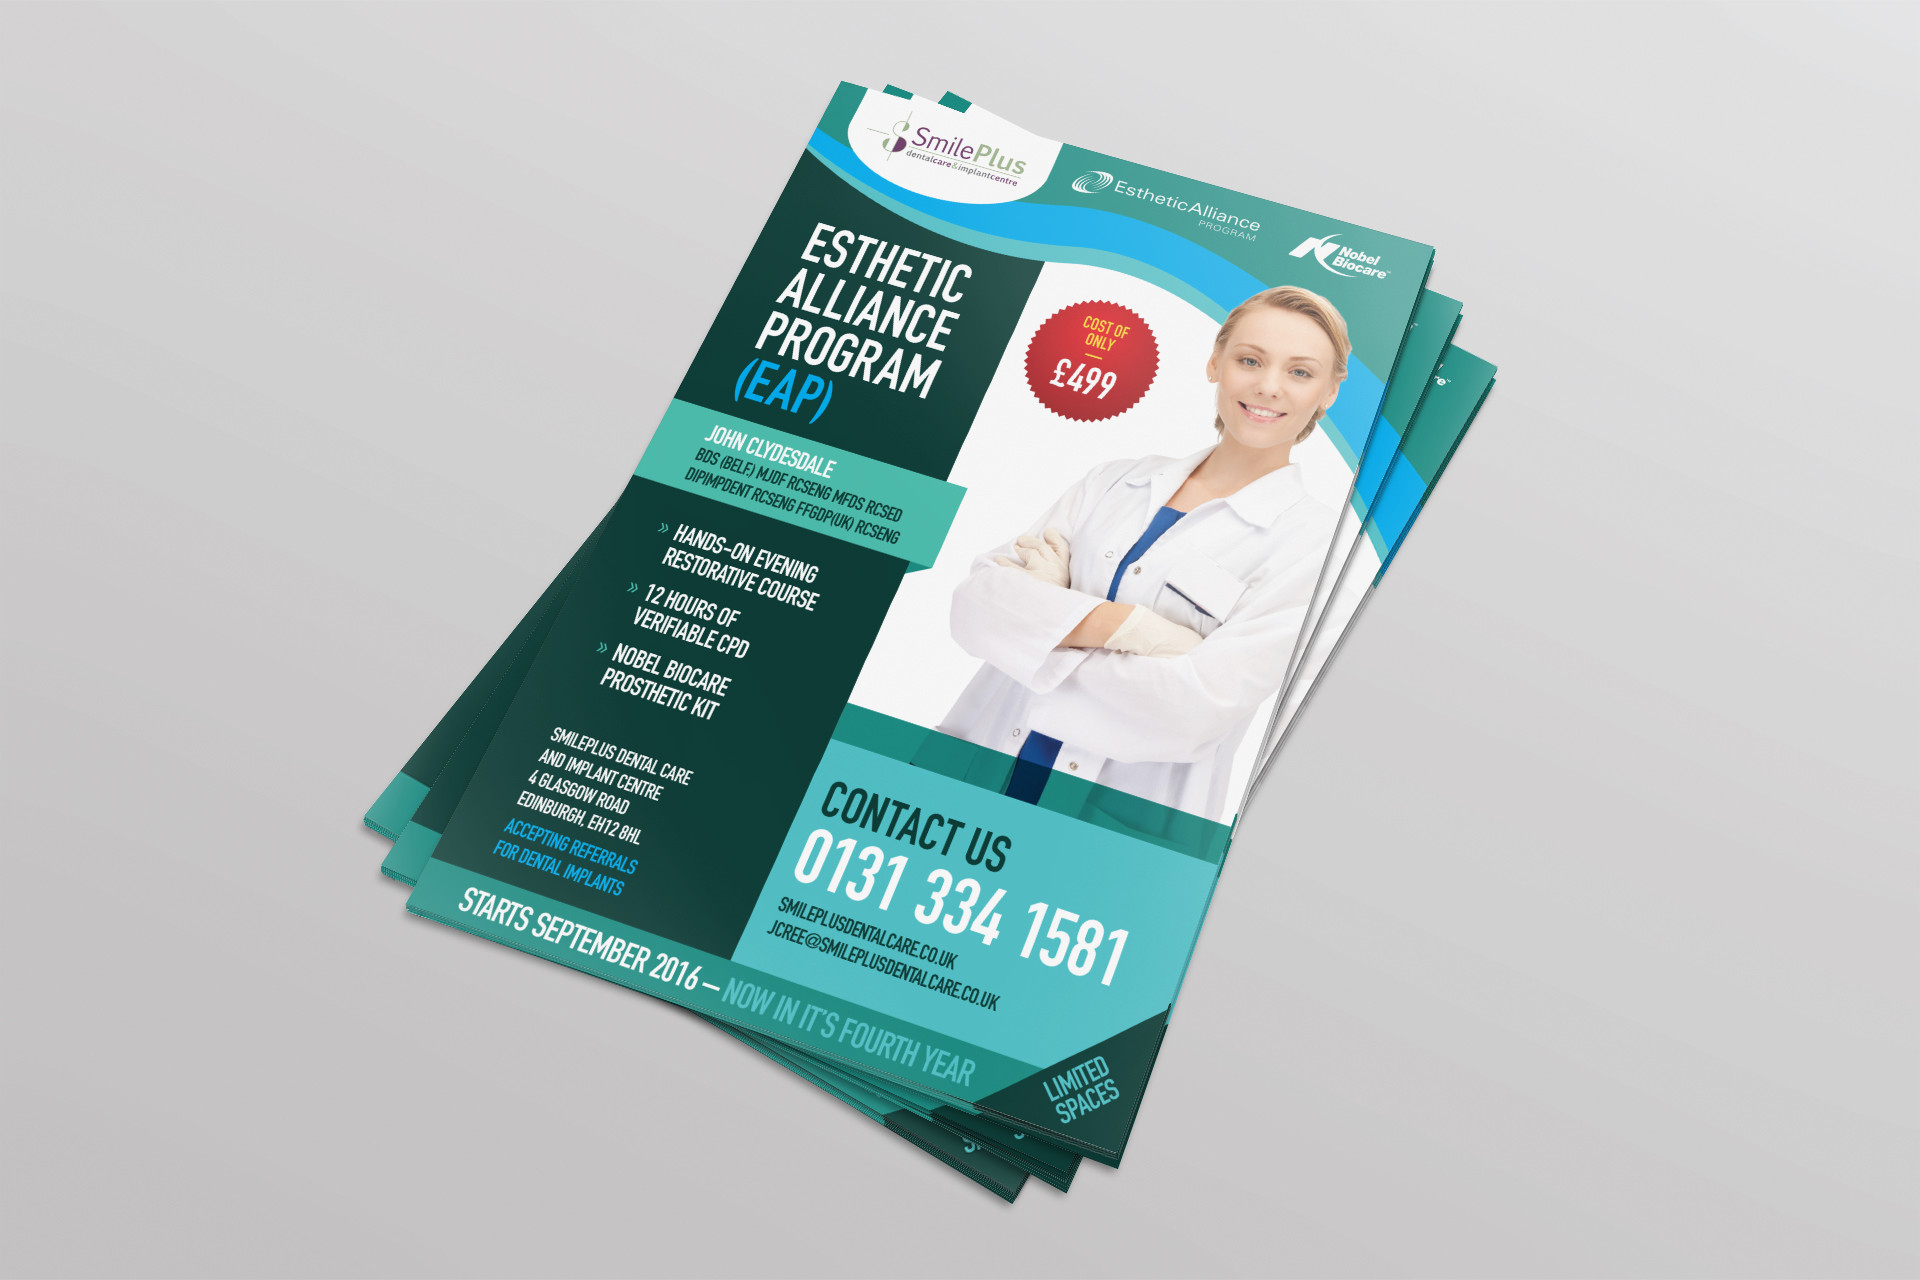 Flyer-design-Glasgow-Edinburgh-West-Lothian-04.jpg